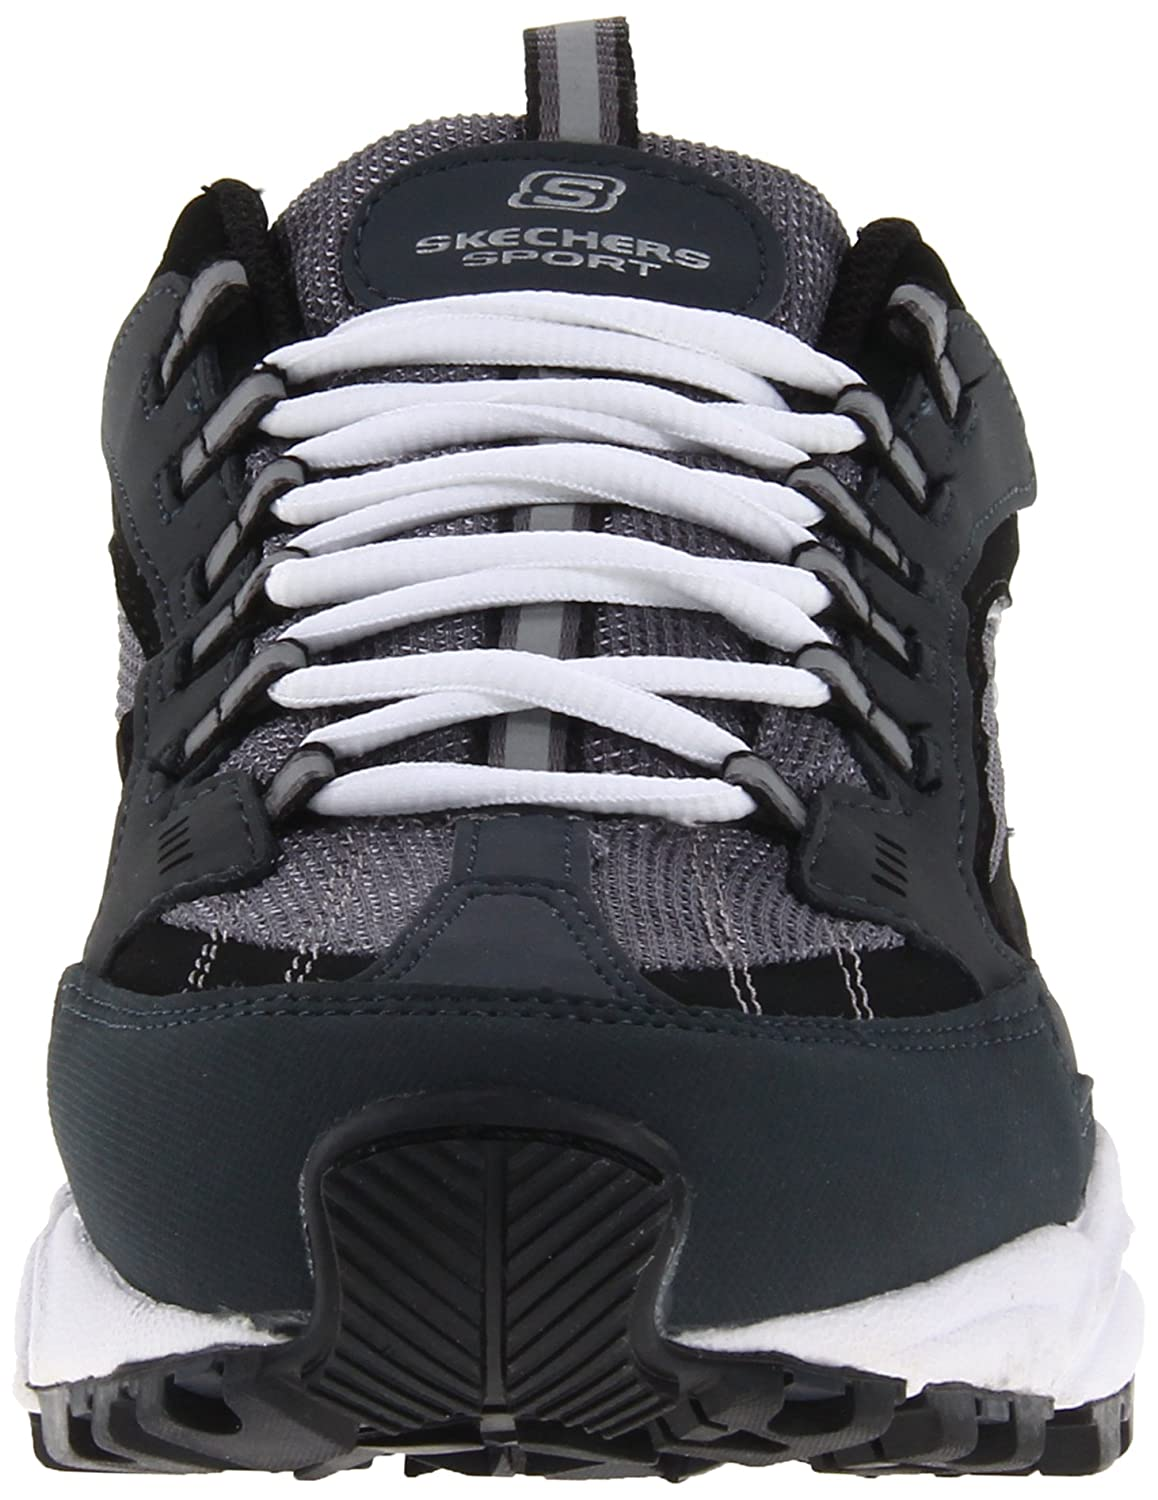 35f8a22a62ee ... Skechers Sport Men s Stamina Nuovo Cutback Lace-Up US